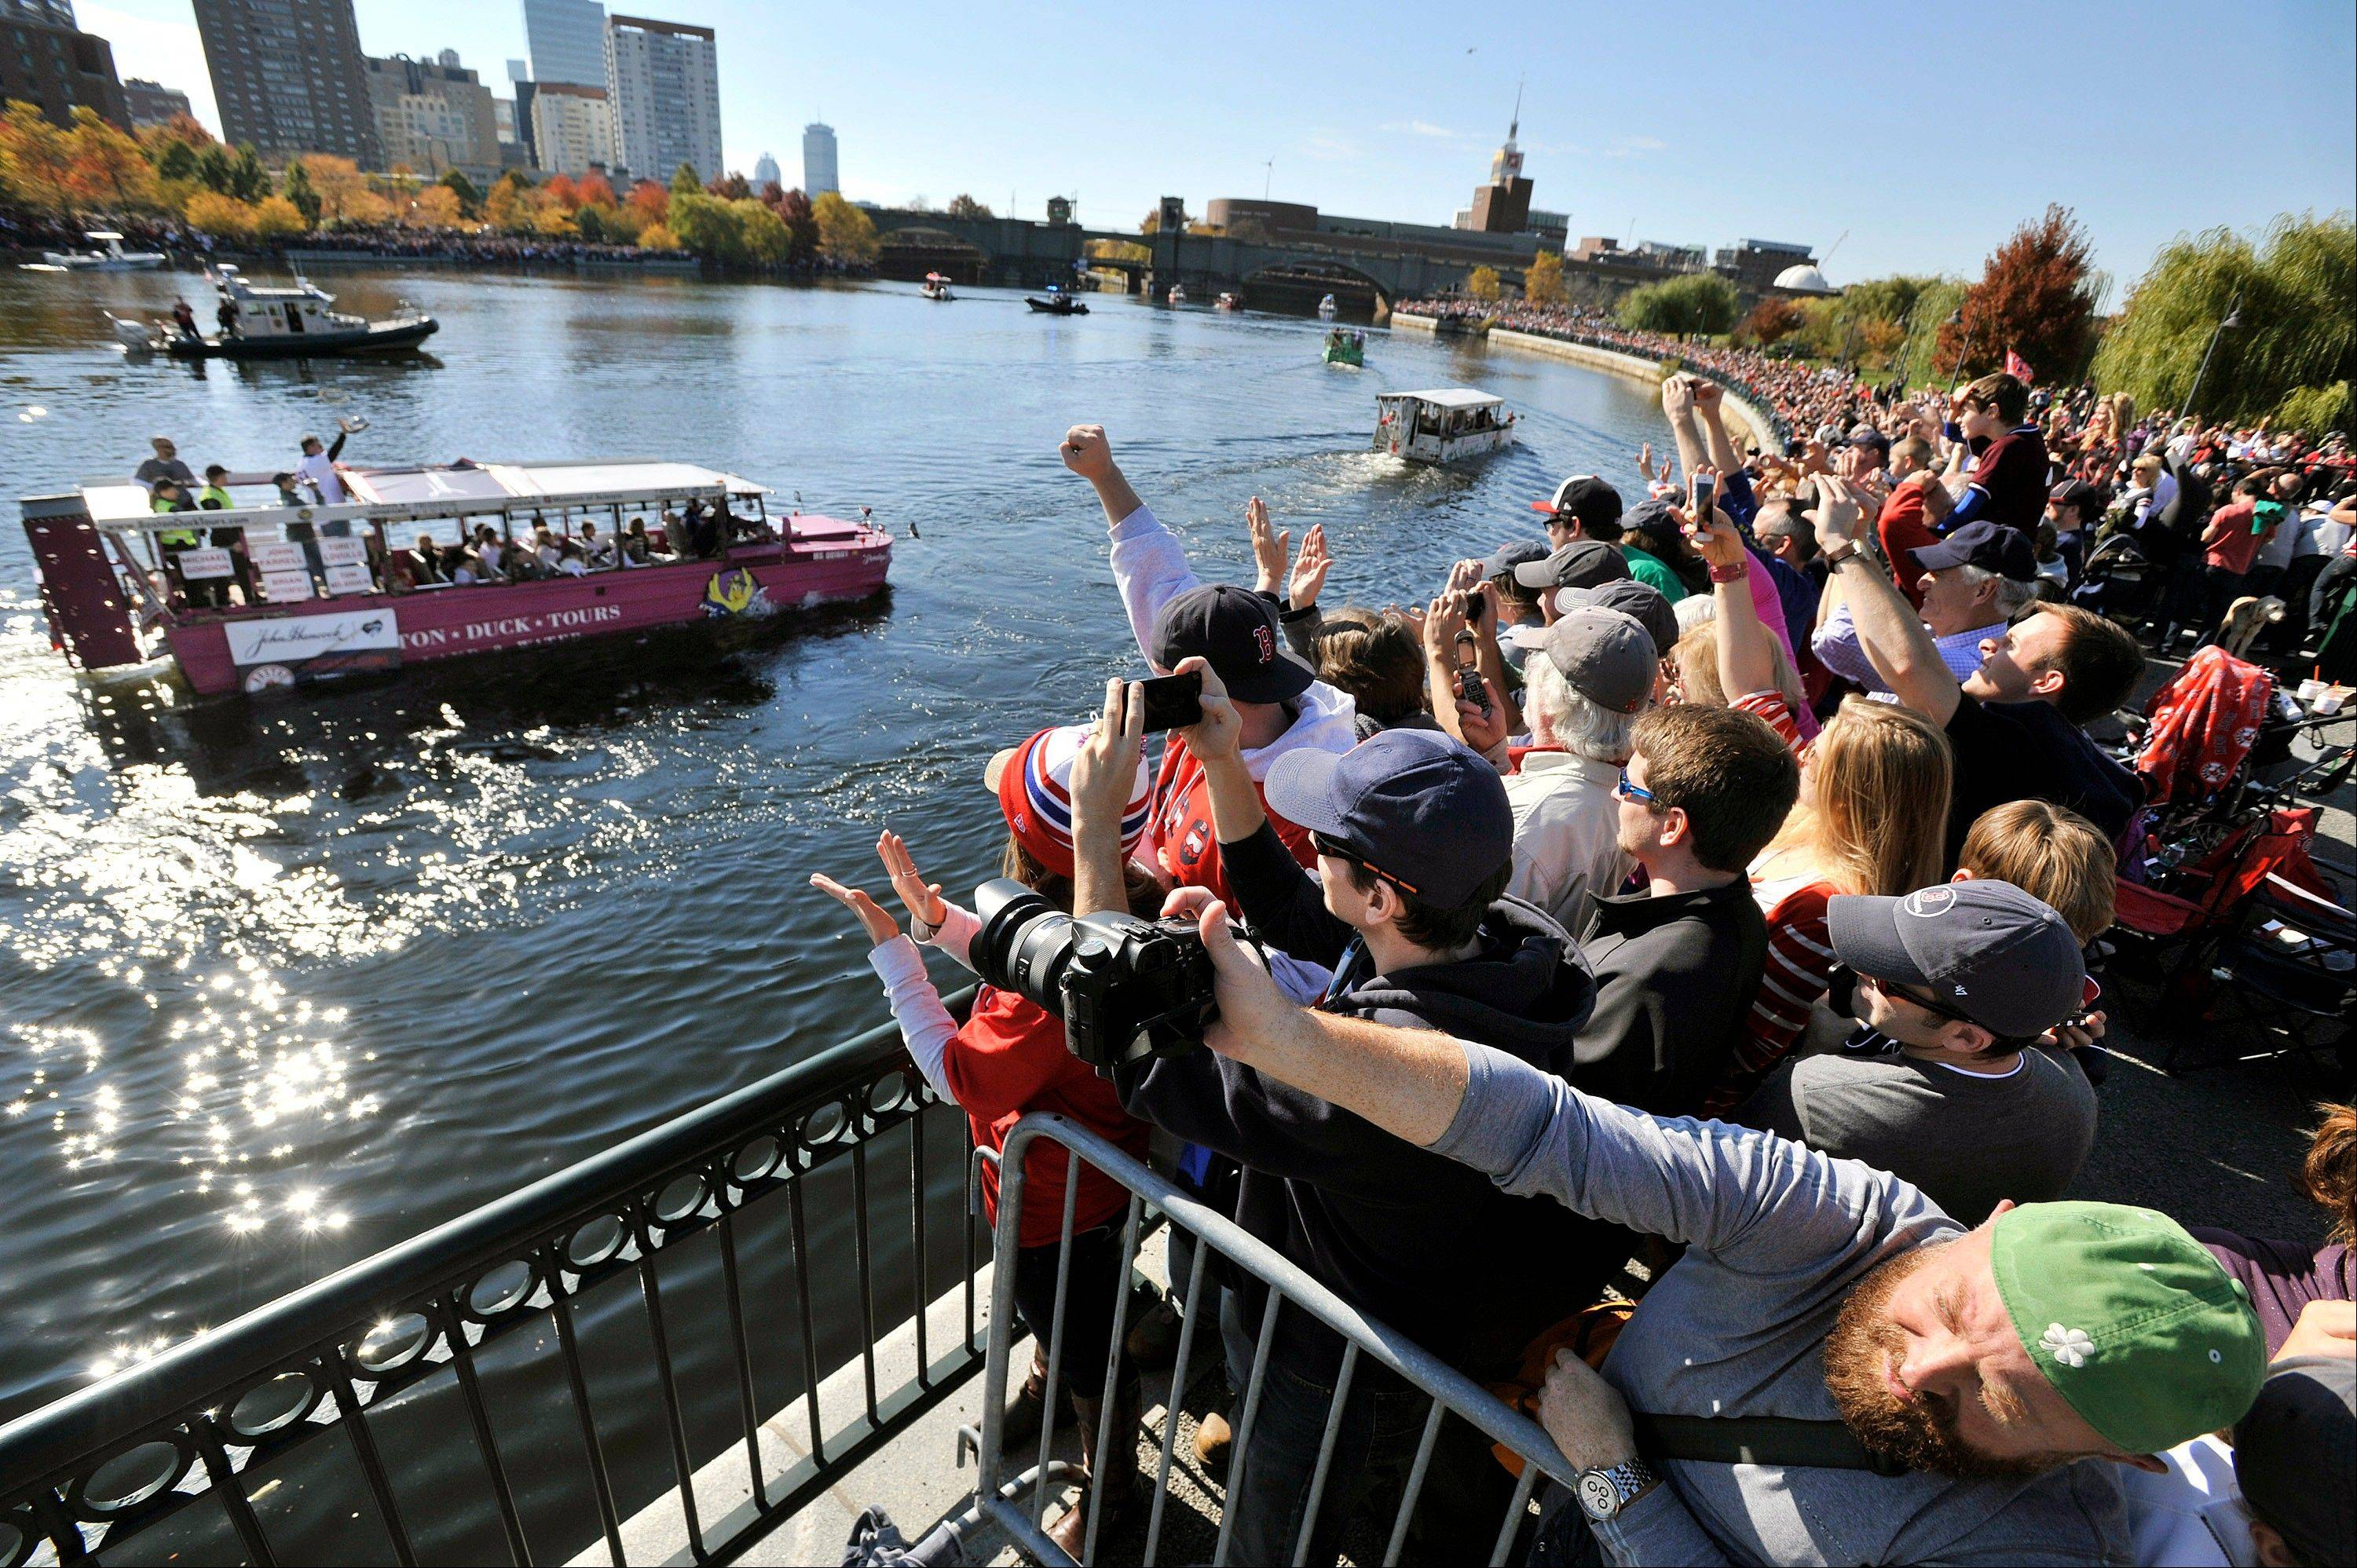 Fans gathered along the Charles River cheer as Boston Red Sox players float past on amphibious duck boats during the baseball team's World Series victory parade Saturday.